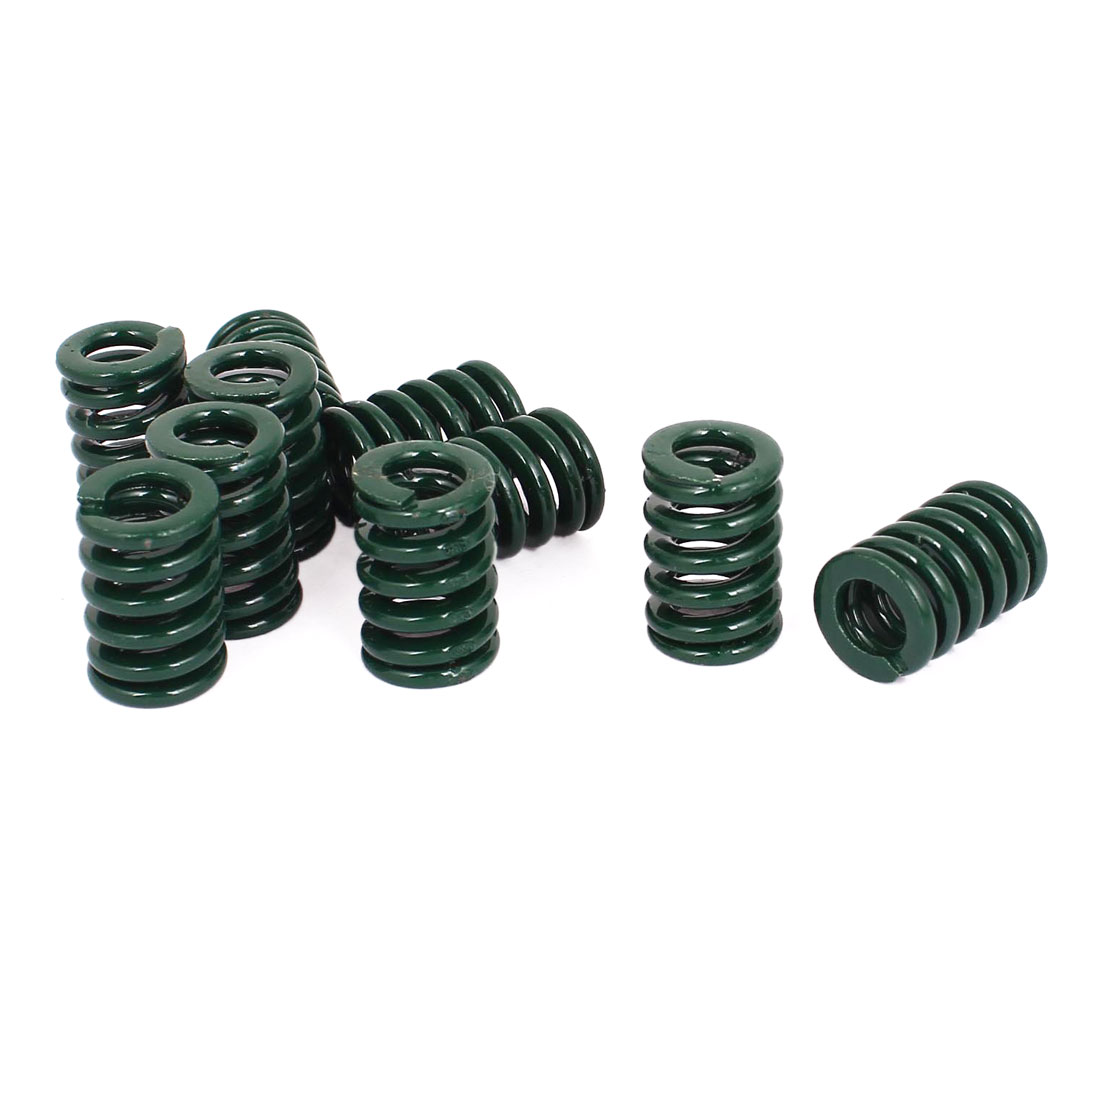 14mm OD 20mm Long Heavy Load Stamping Compression Mold Die Spring Green 10pcs